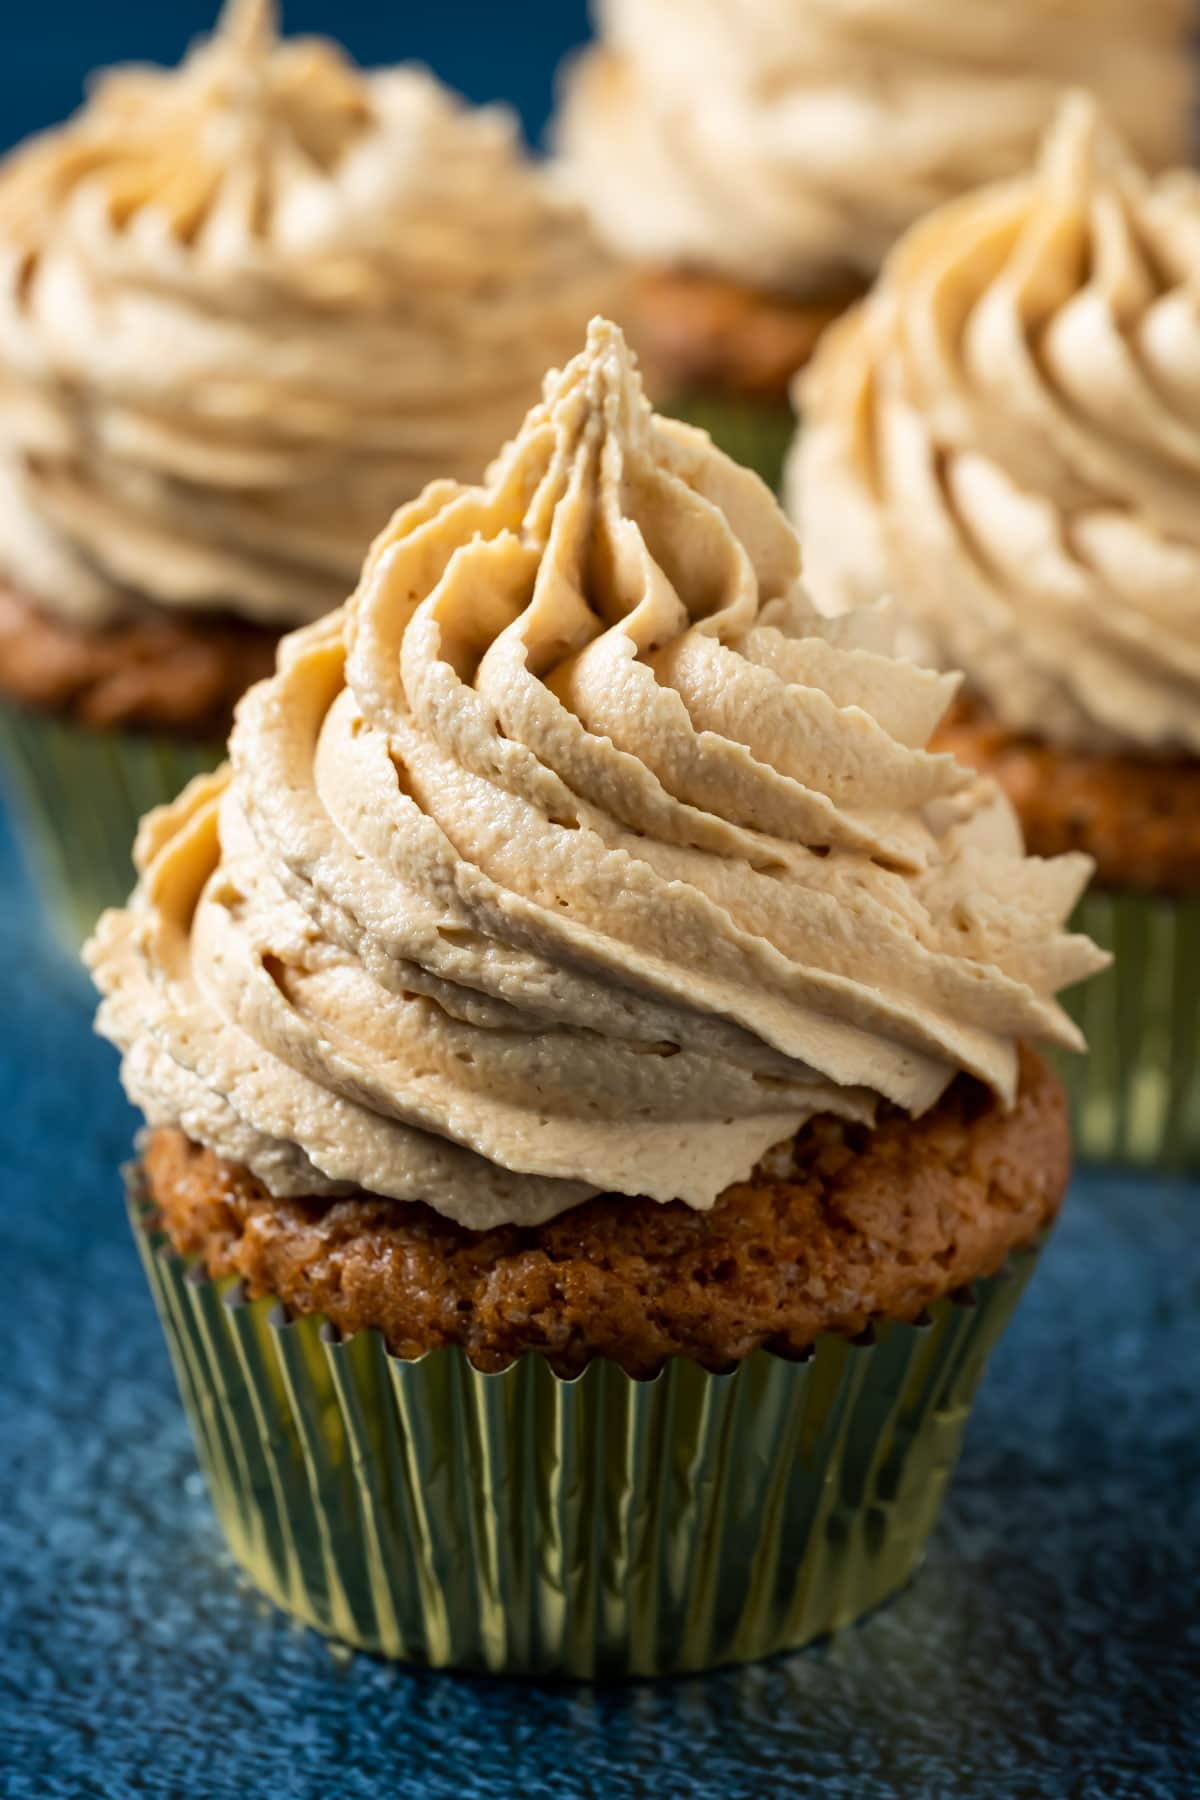 Cupcakes topped with biscoff buttercream.